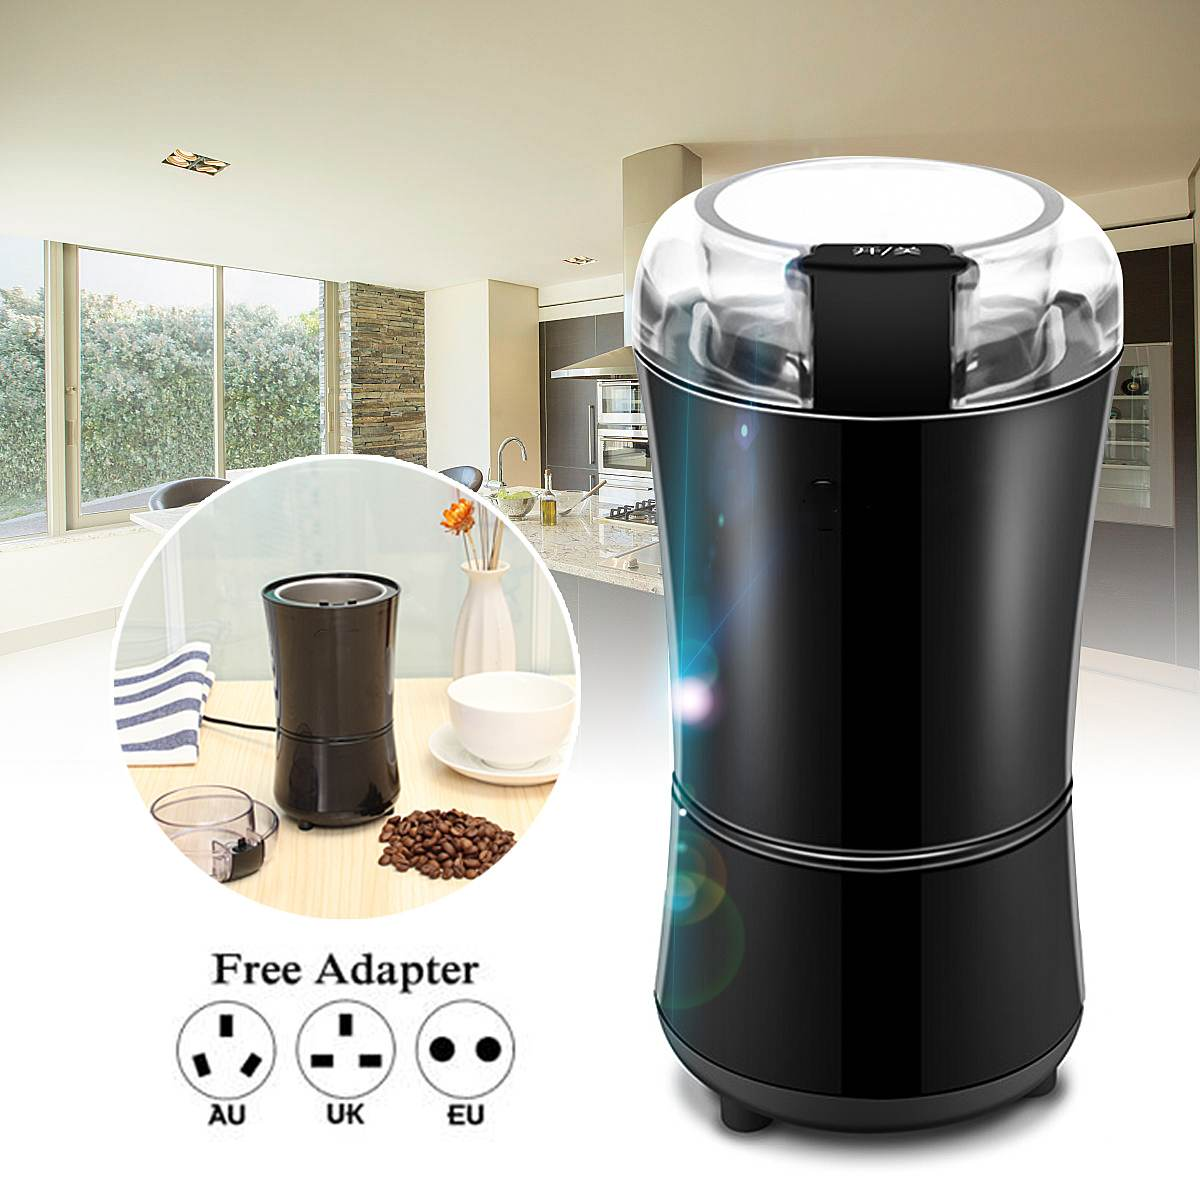 Portable Mini Electric Coffee Grinder Household Kitchen Salt Pepper Grinder Spice Nuts Seeds Coffee Bean Grinding Machine